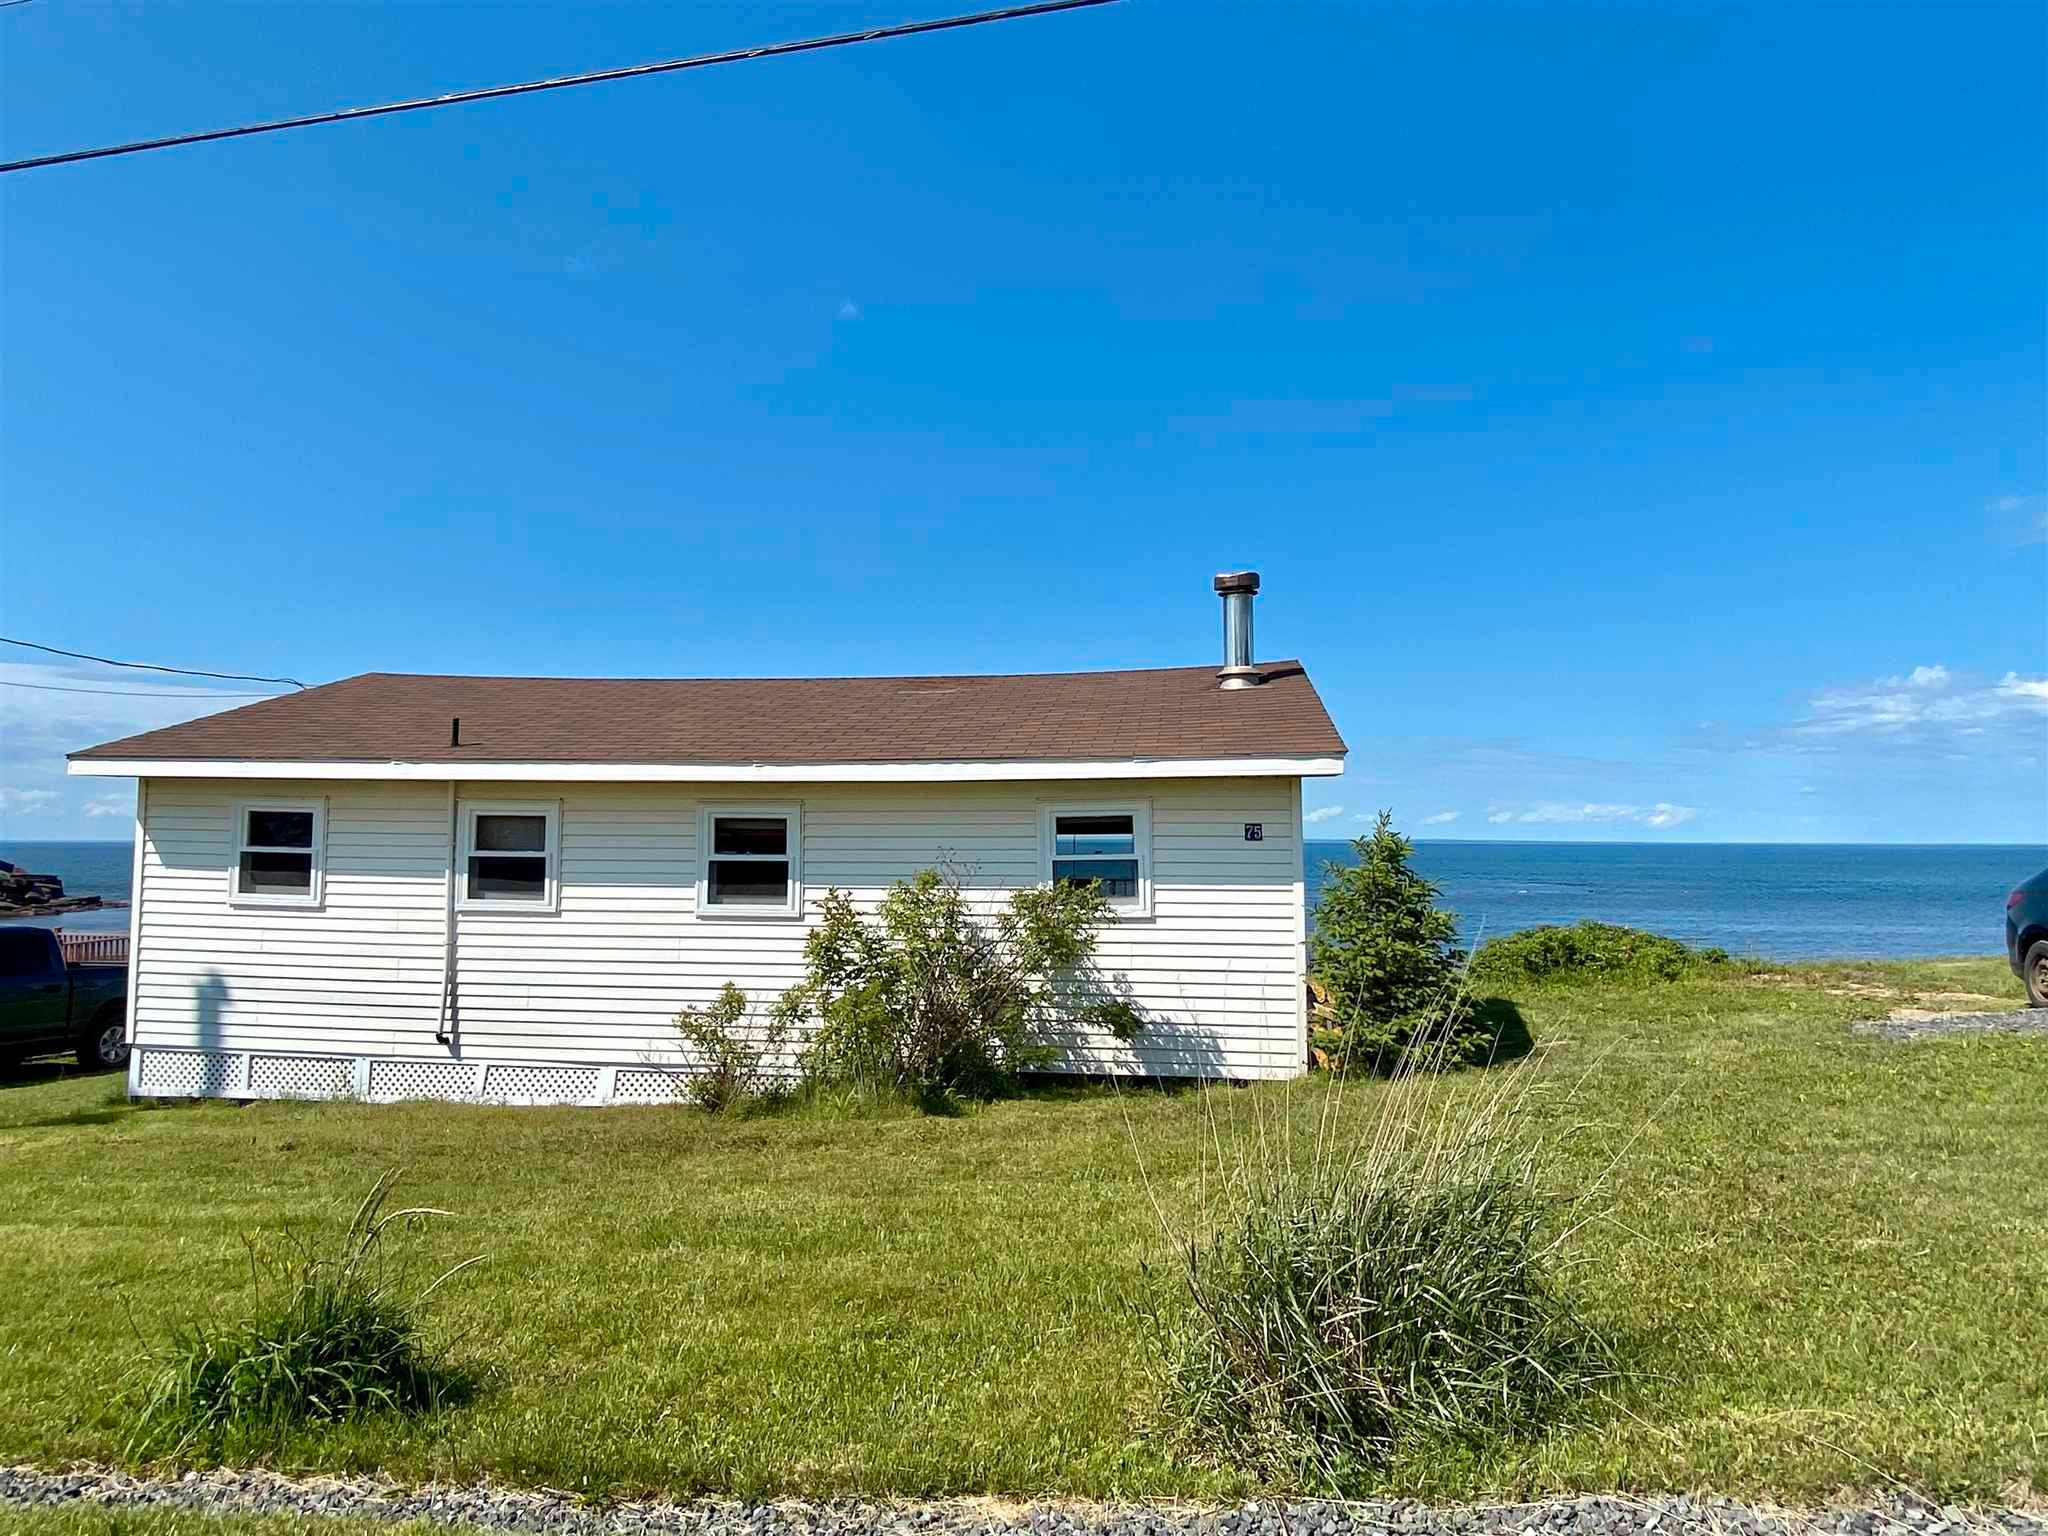 Main Photo: 75 Red Cliff Drive in Seafoam: 108-Rural Pictou County Residential for sale (Northern Region)  : MLS®# 202114903